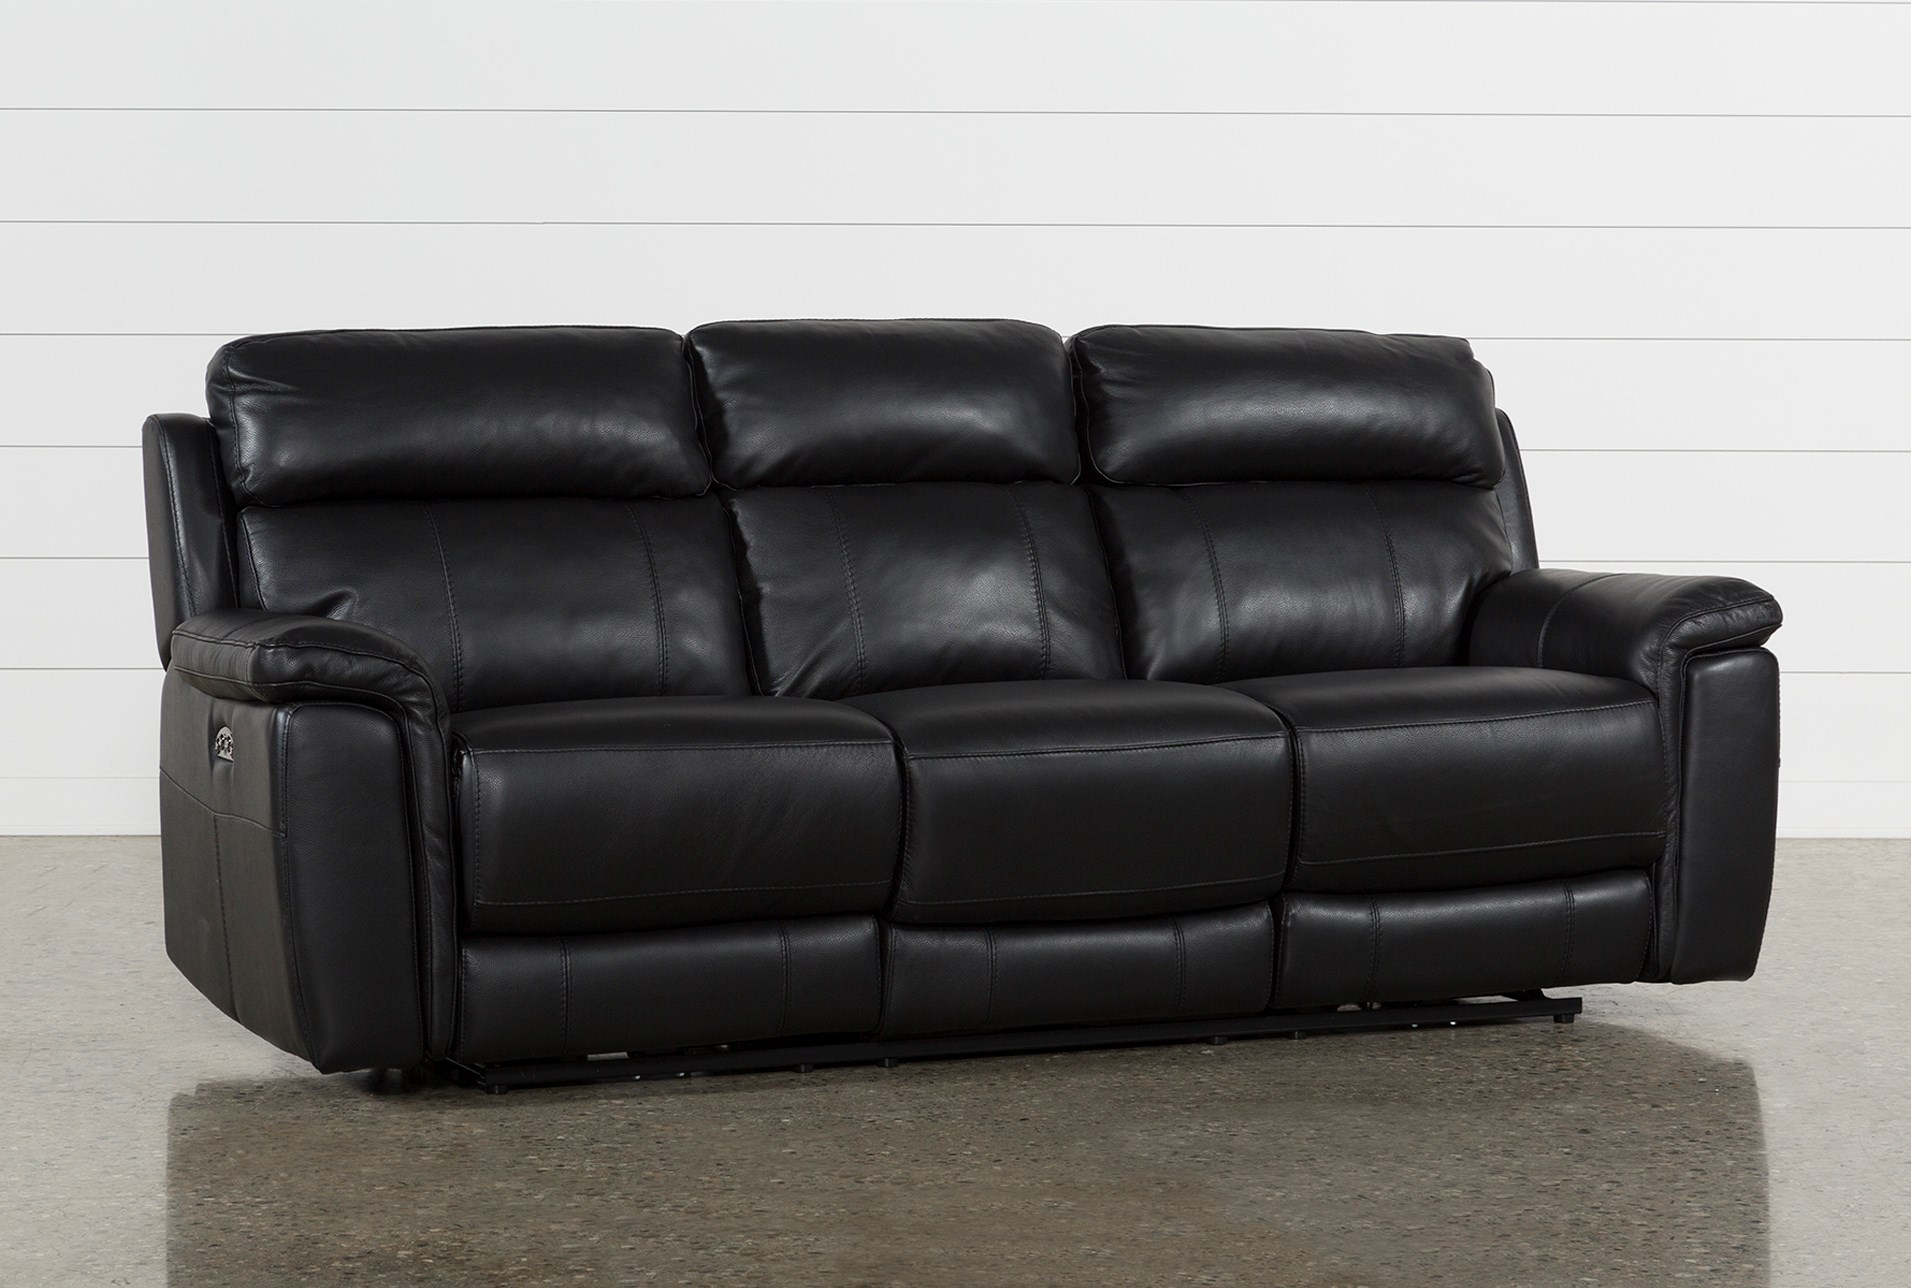 Dino Black Leather Reclining Sofa W Headrest Usb Qty 1 Has Been Successfully Added To Your Cart